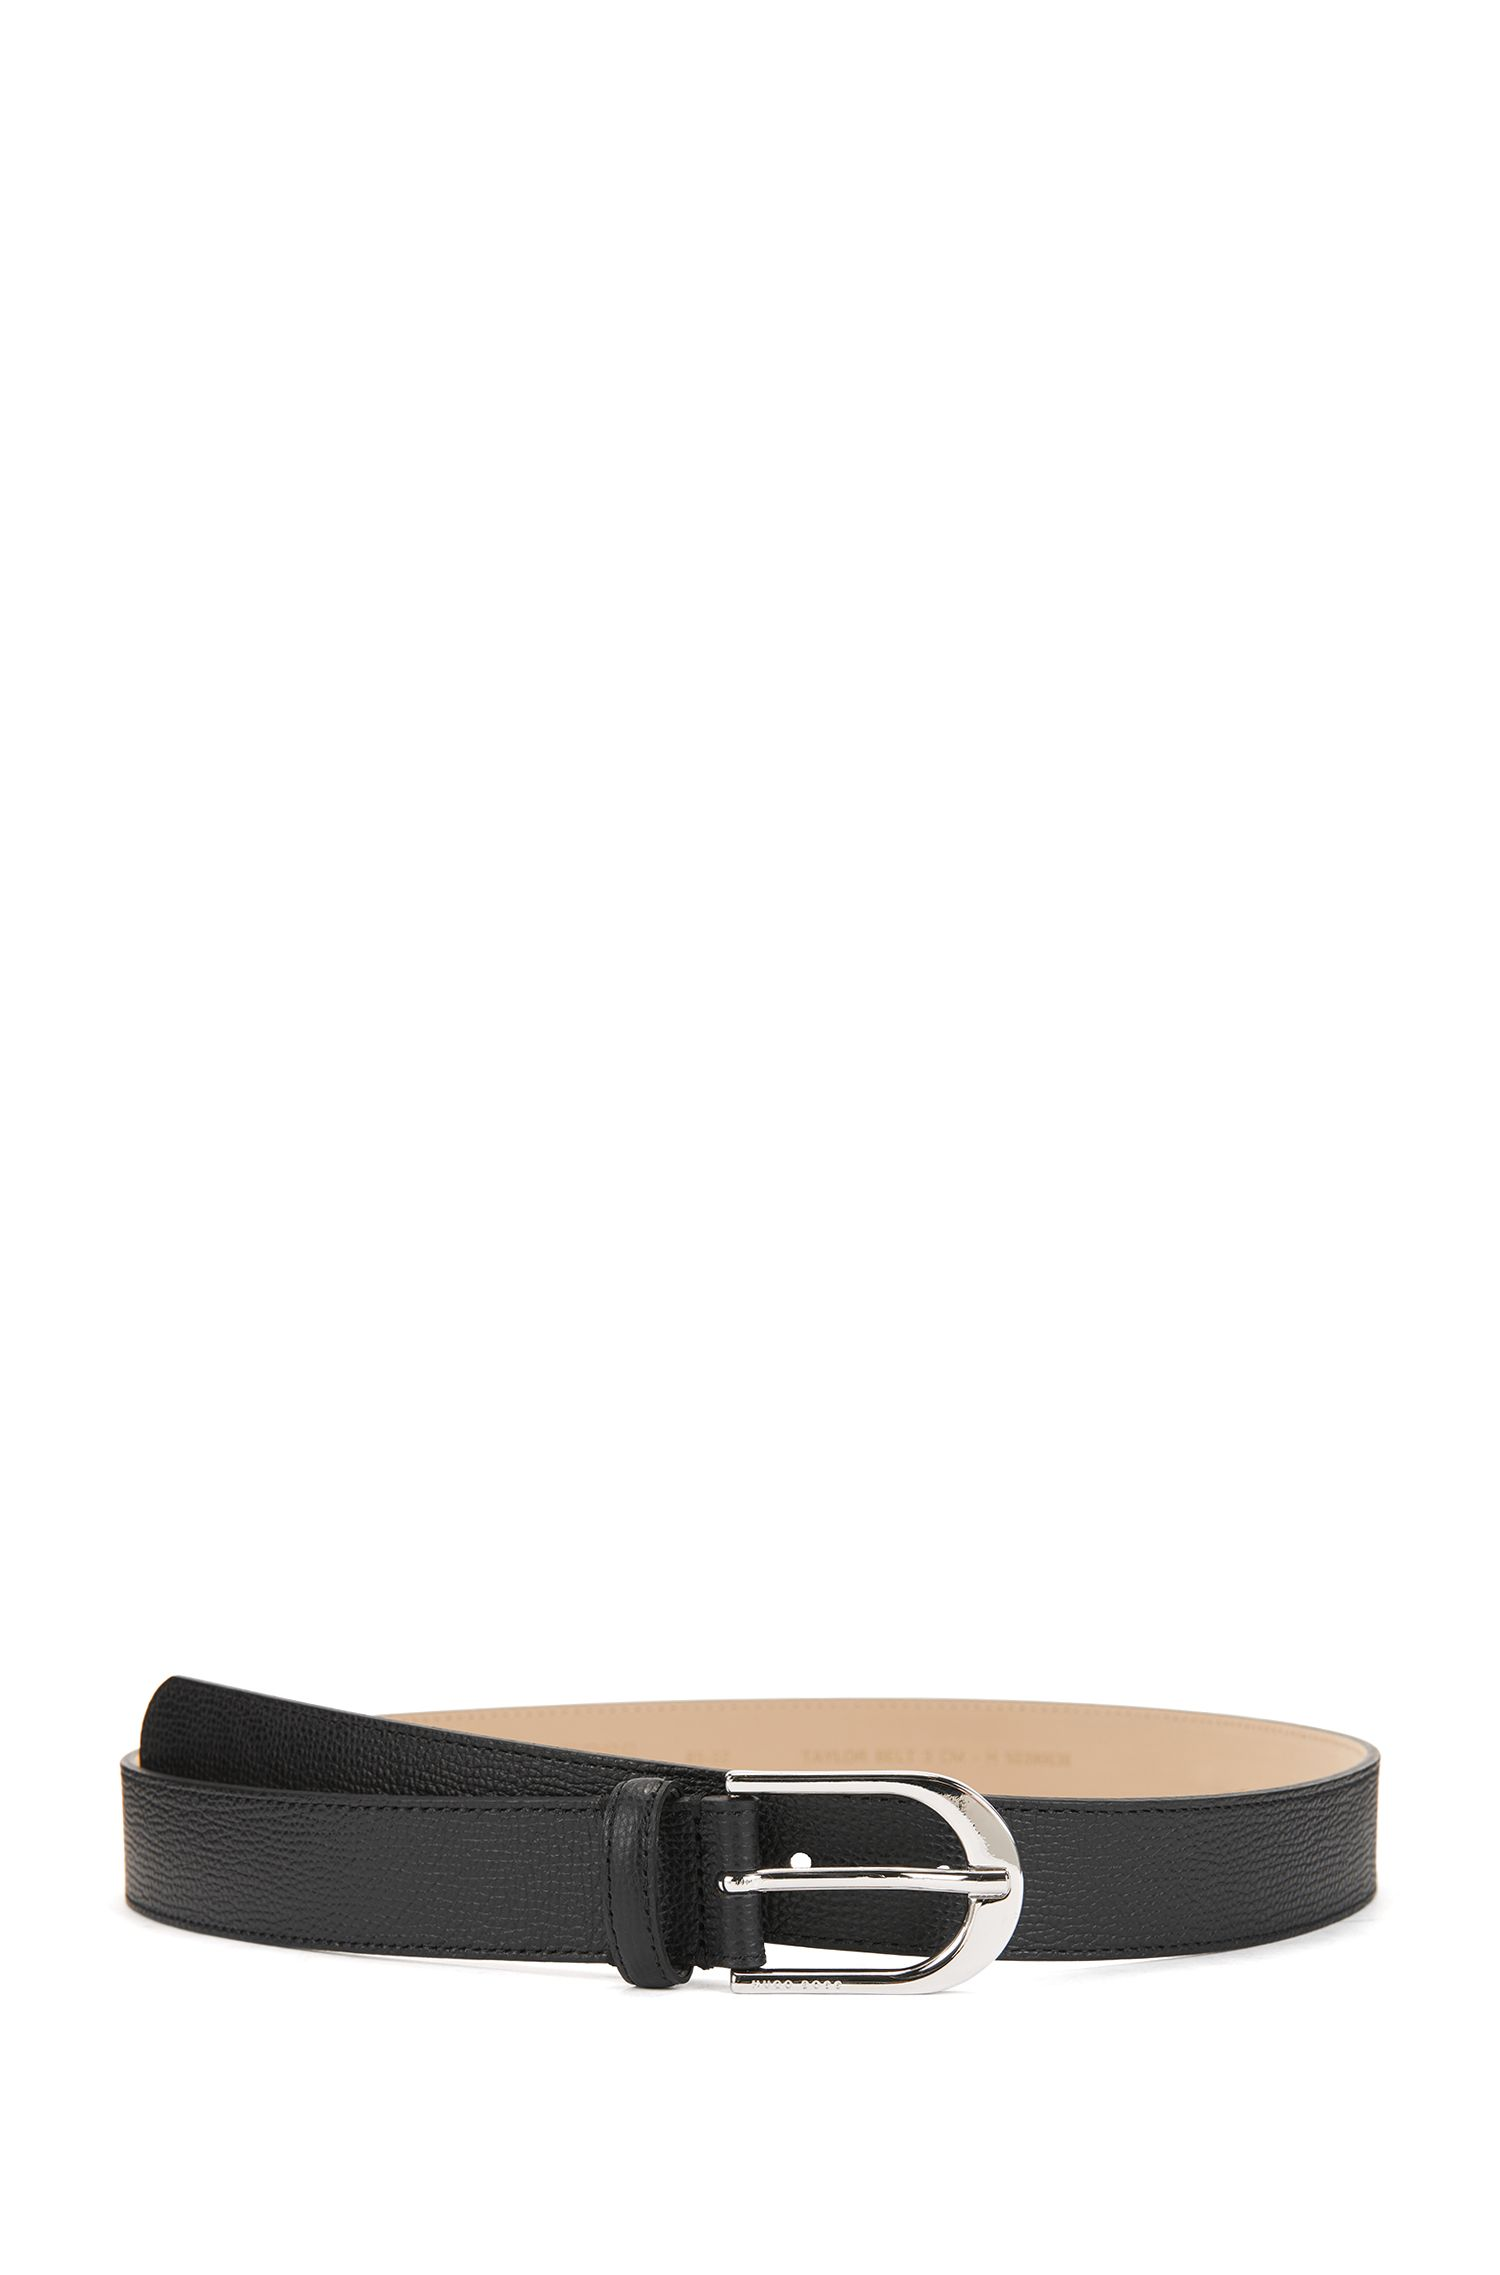 Italian-leather belt with polished silver-effect buckle, Black